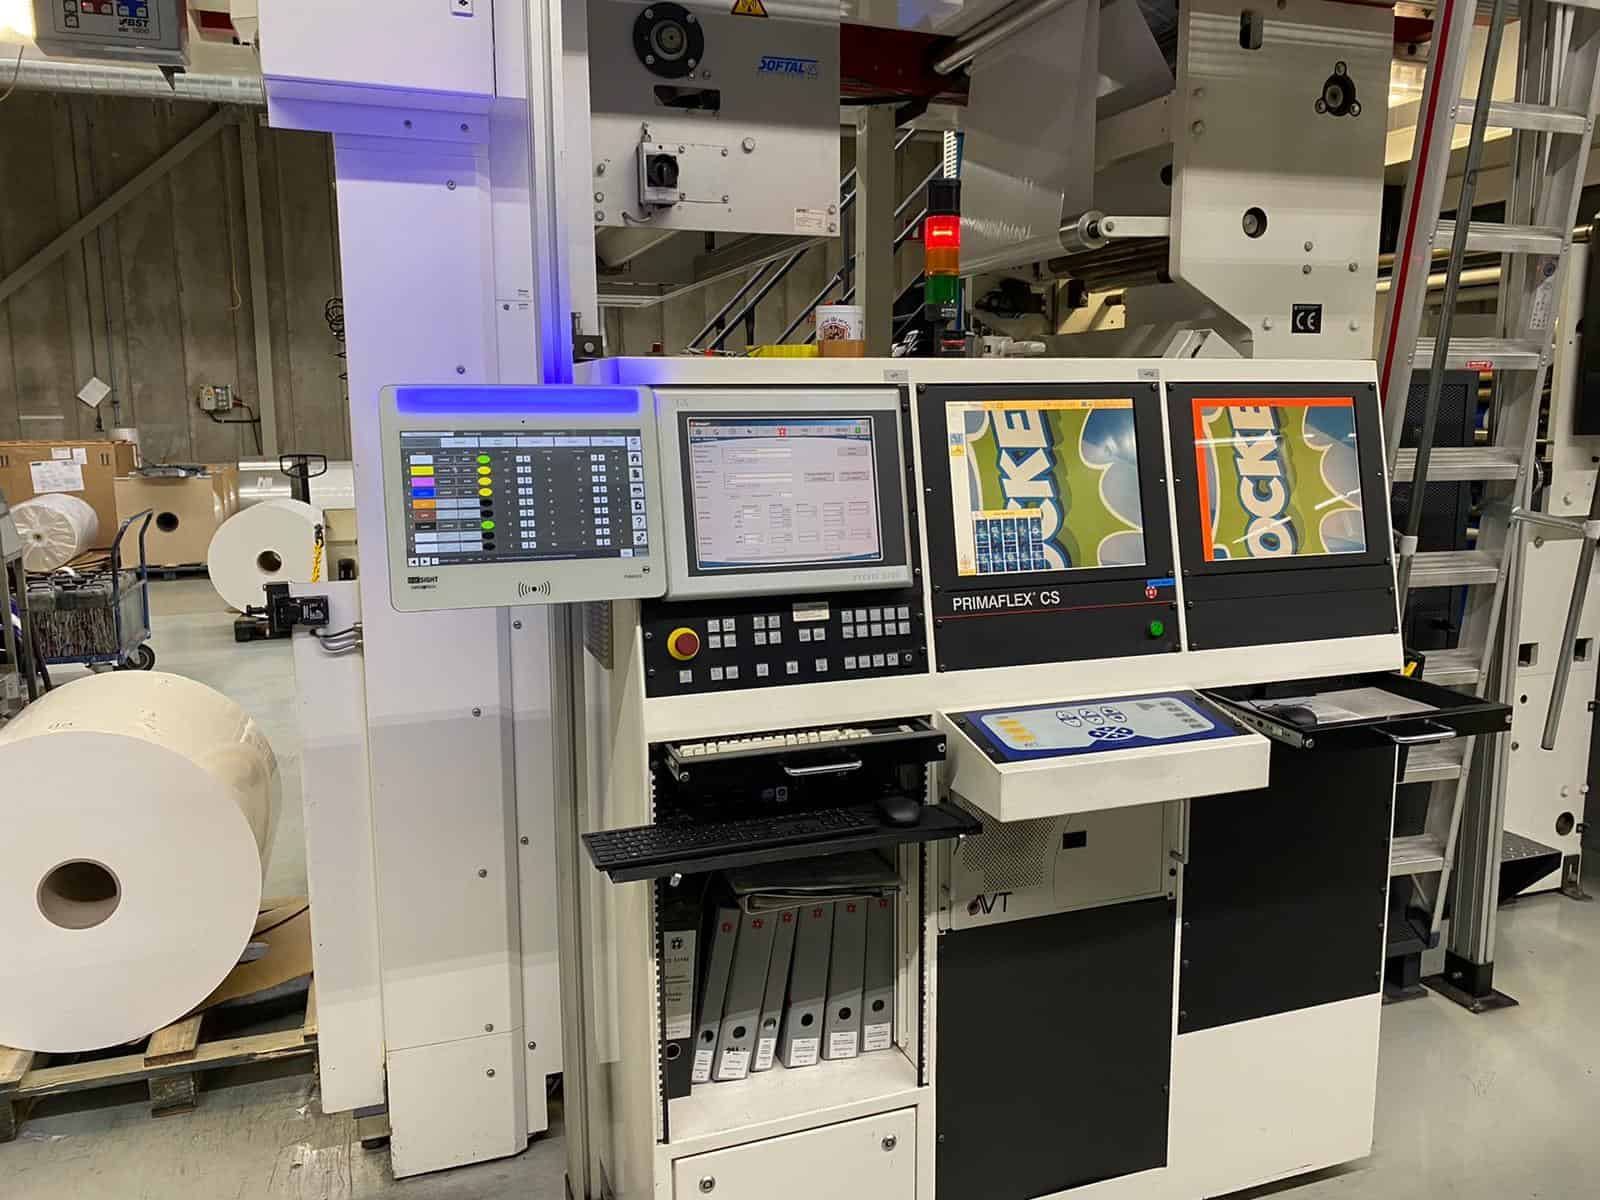 Maasmond Paperindustrie bv Oostvoorne in The Netherlands houses a W&H Primaflex CS press, equipped with viscosity sensors and other automated print quality control systems.